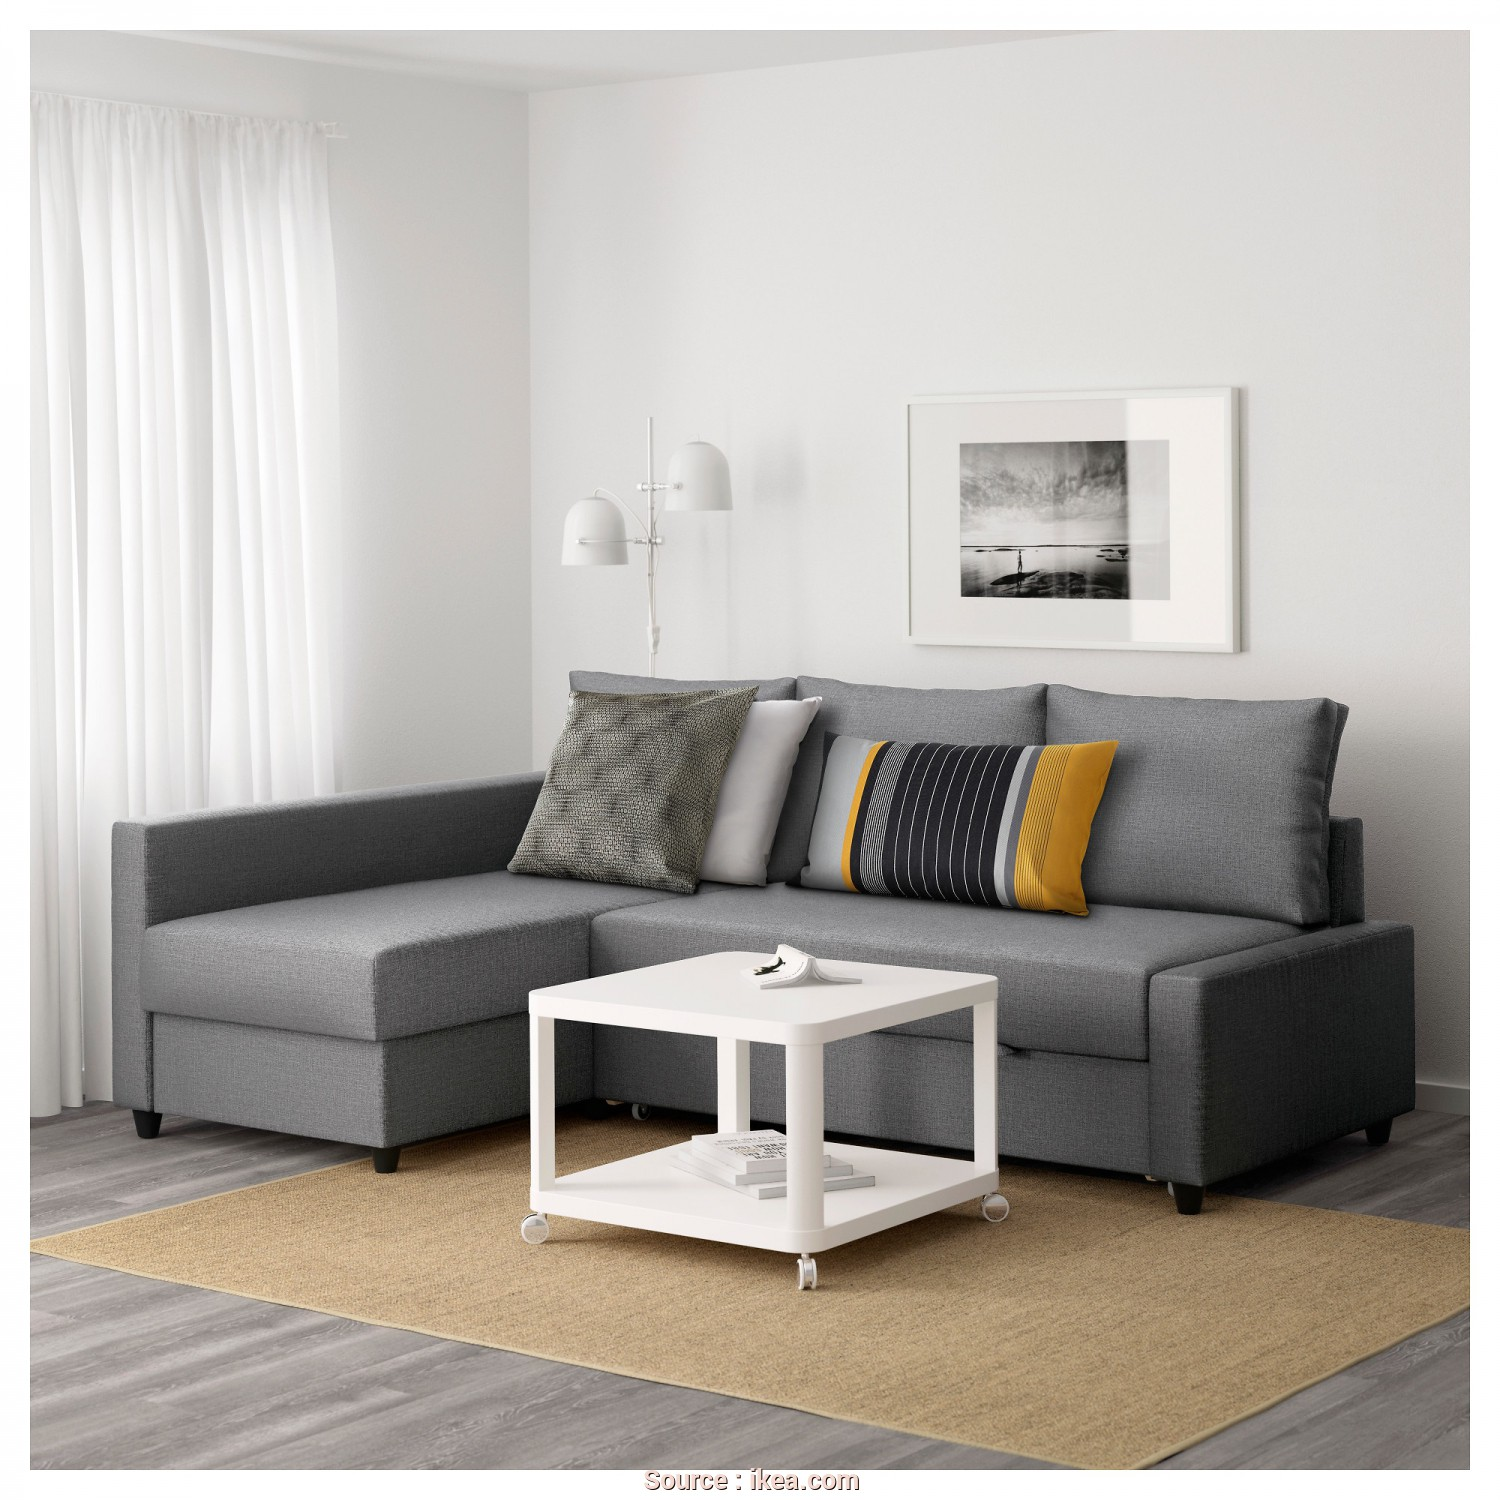 Futon Ikea Catalogo, Costoso IKEA FRIHETEN Corner Sofa-Bed With Storage Sofa, Chaise Longue, Double, In